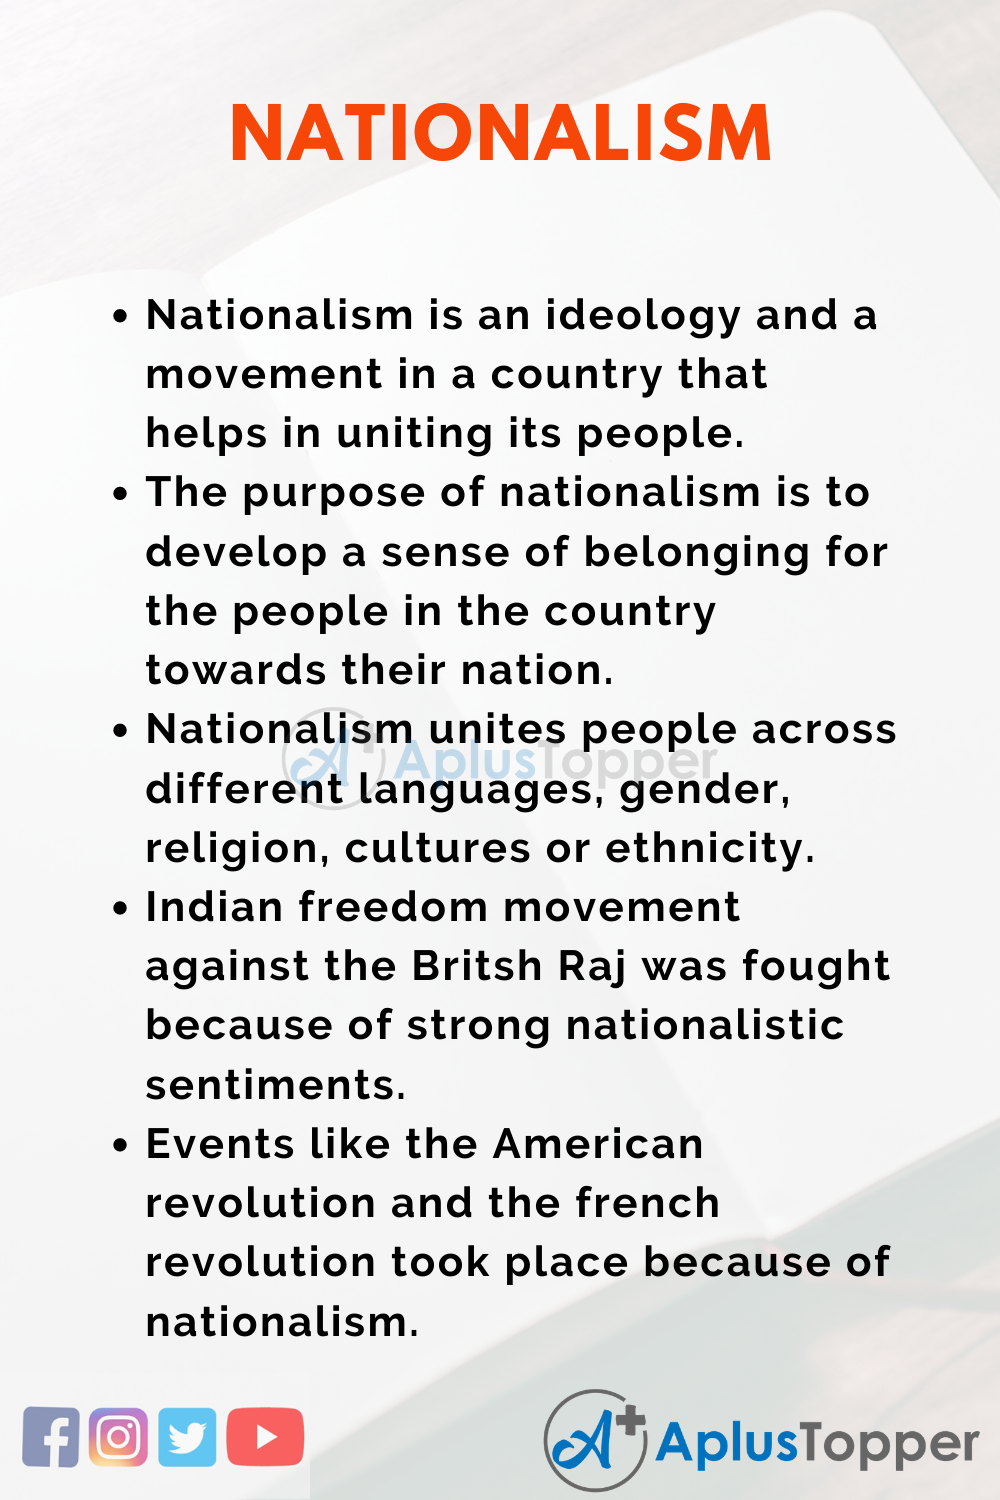 Essay about Nationalism